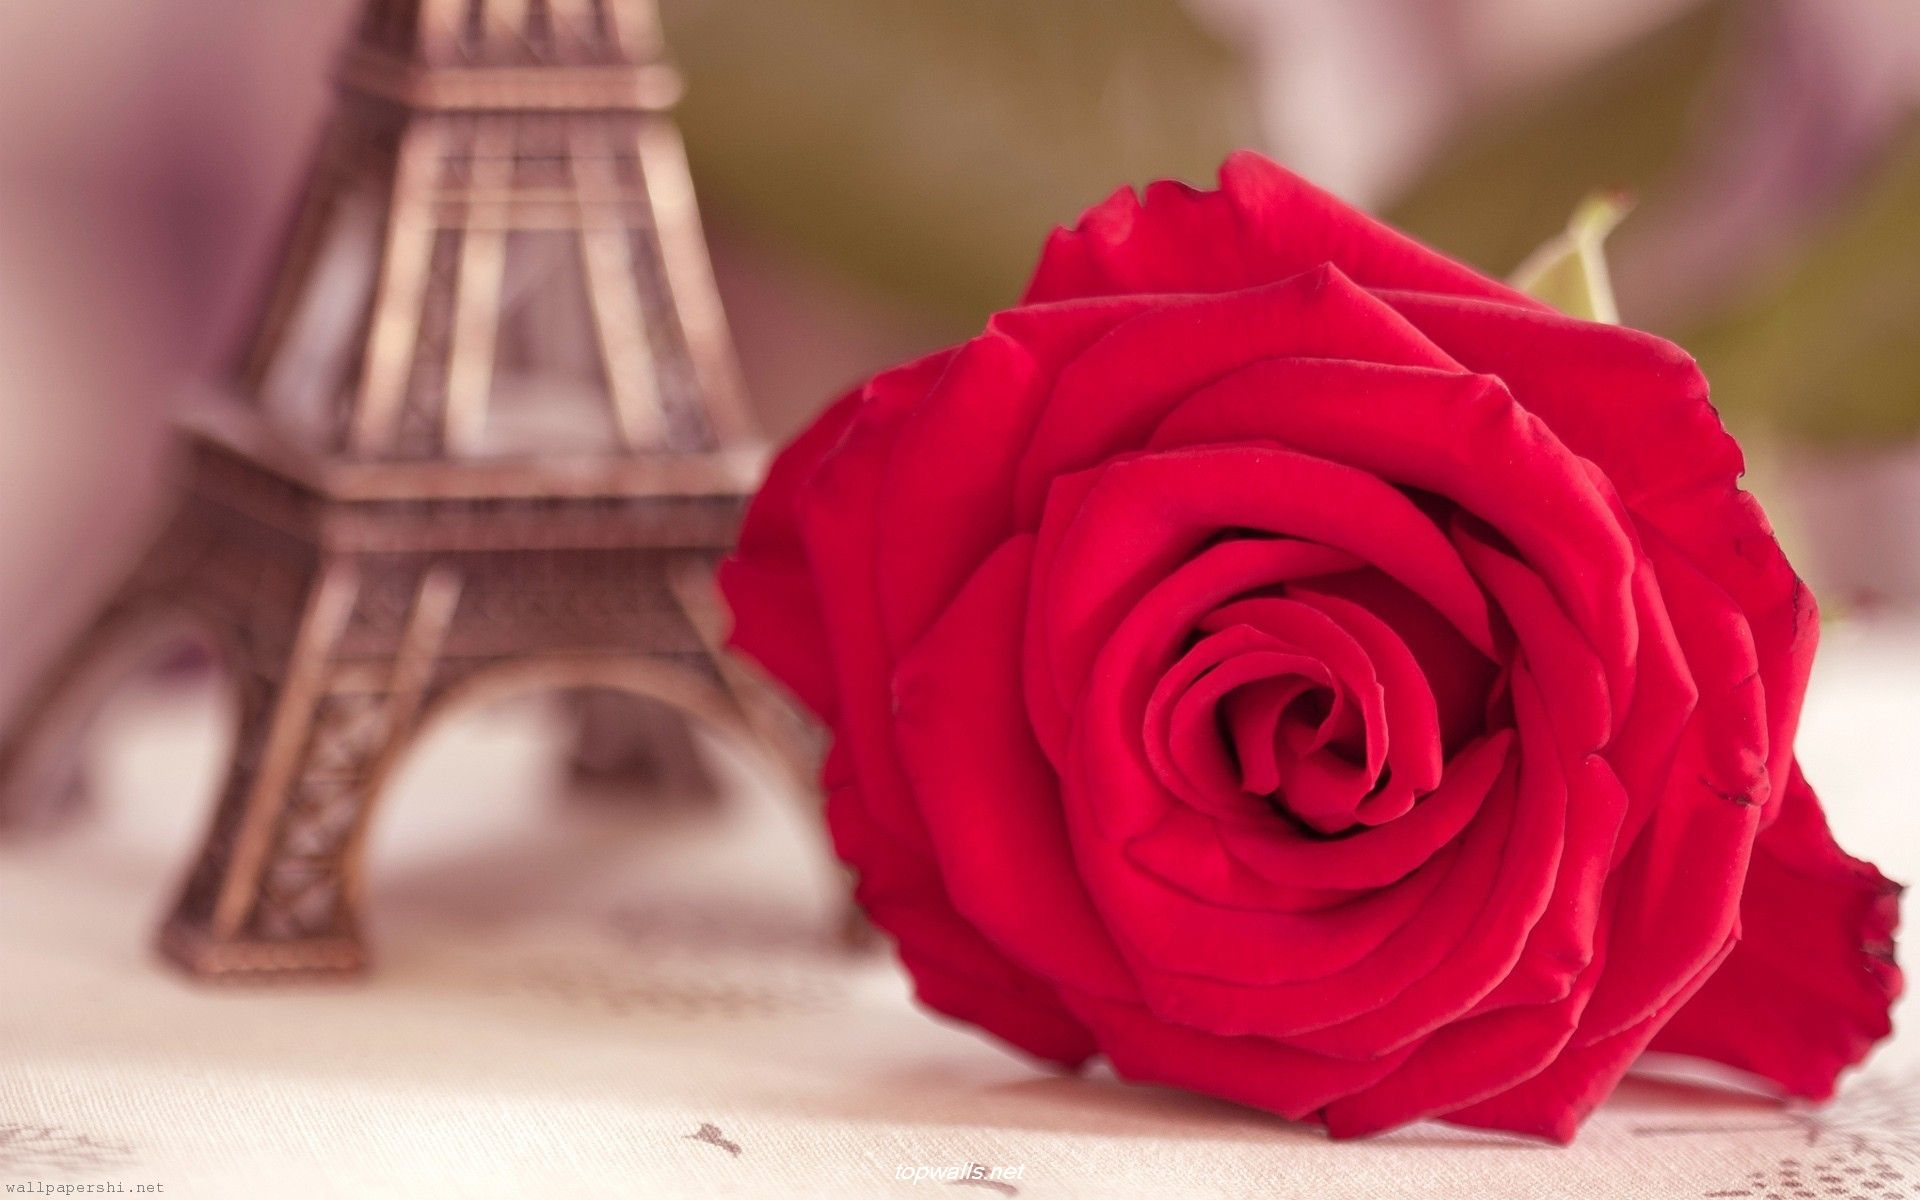 Flower-Rose-Eiffel-Tower-Statuette-Blurring